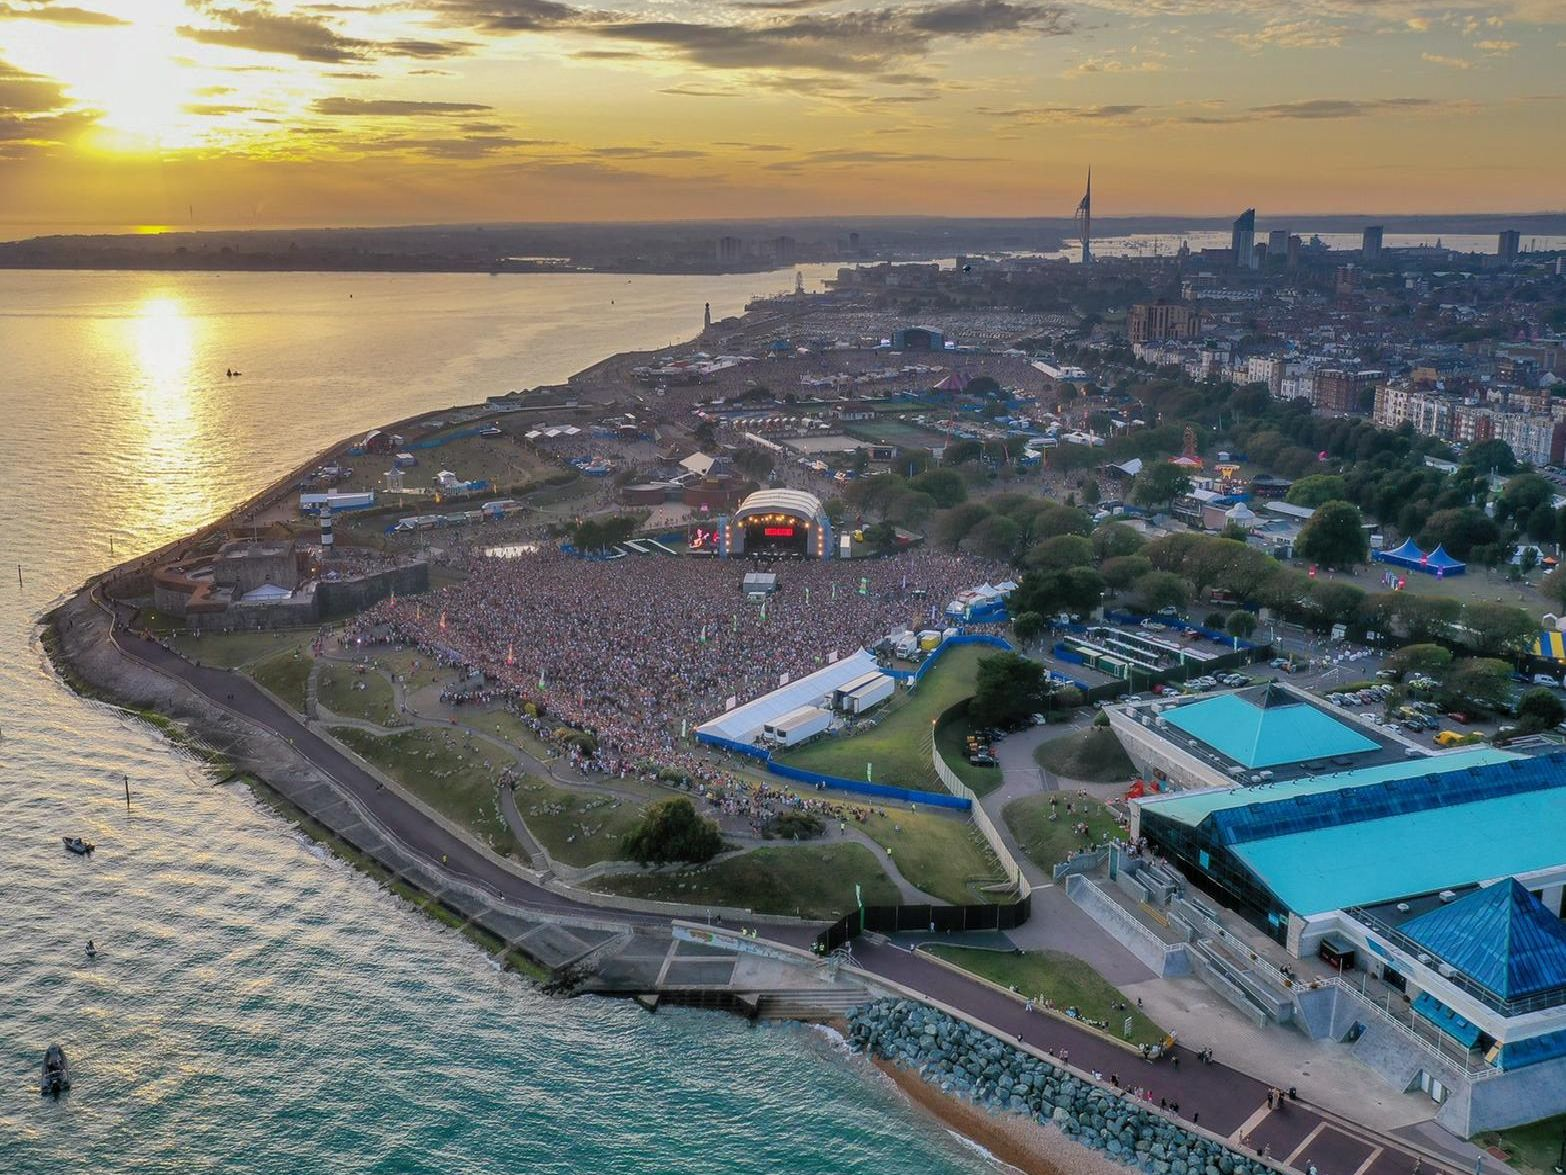 Drone photo of Victorious Festival crowds on Day 2 taken by Shaun Roster